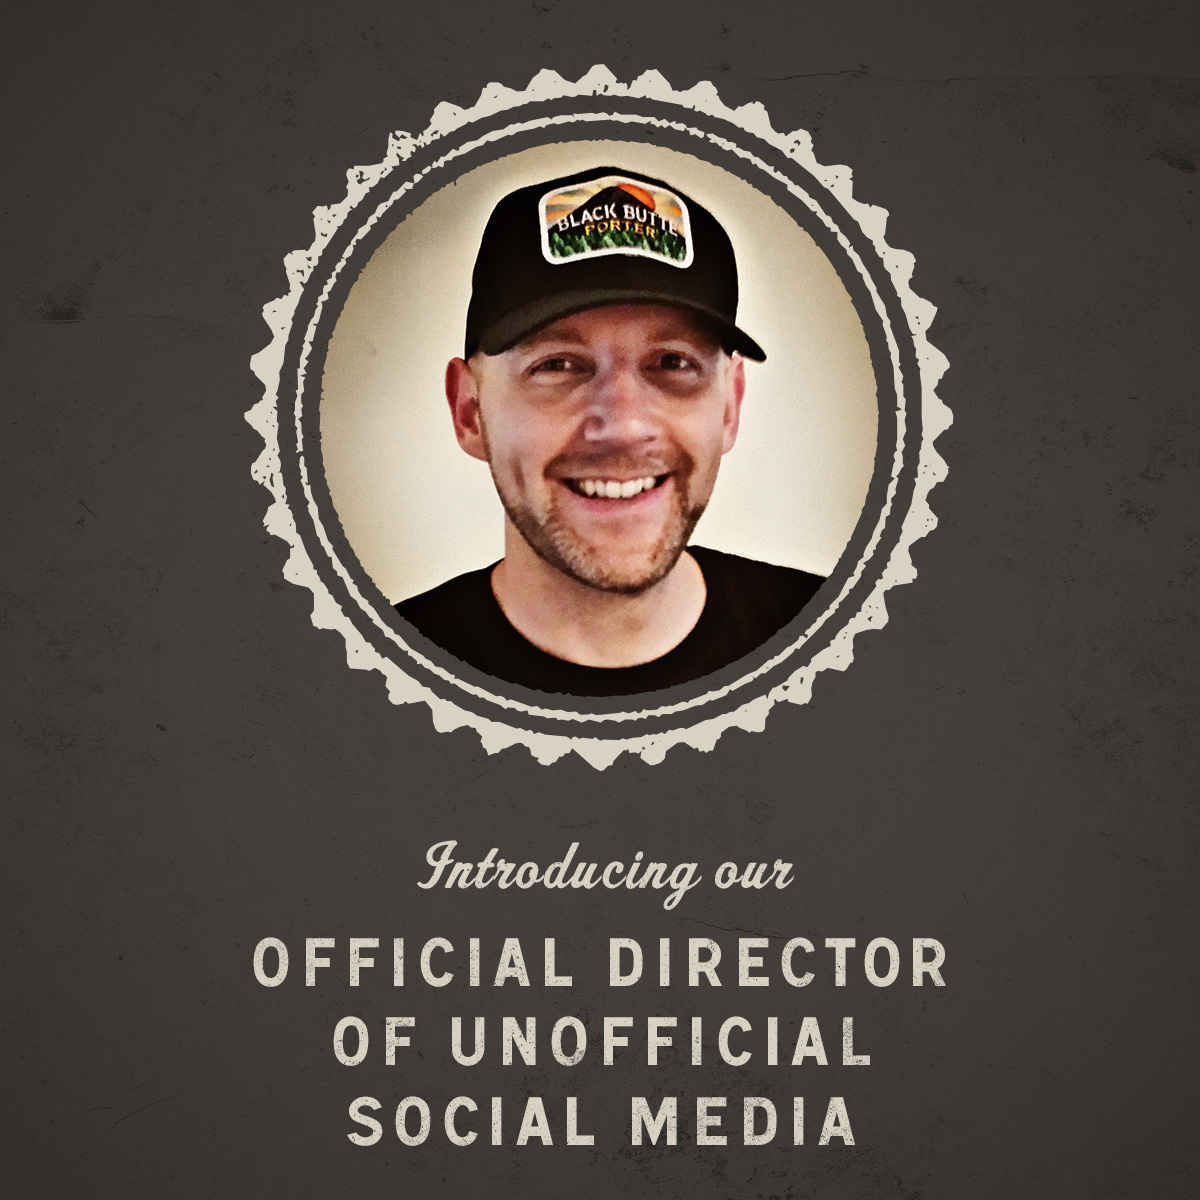 Deschutes Brewery Hires Official Director of Unofficial ...